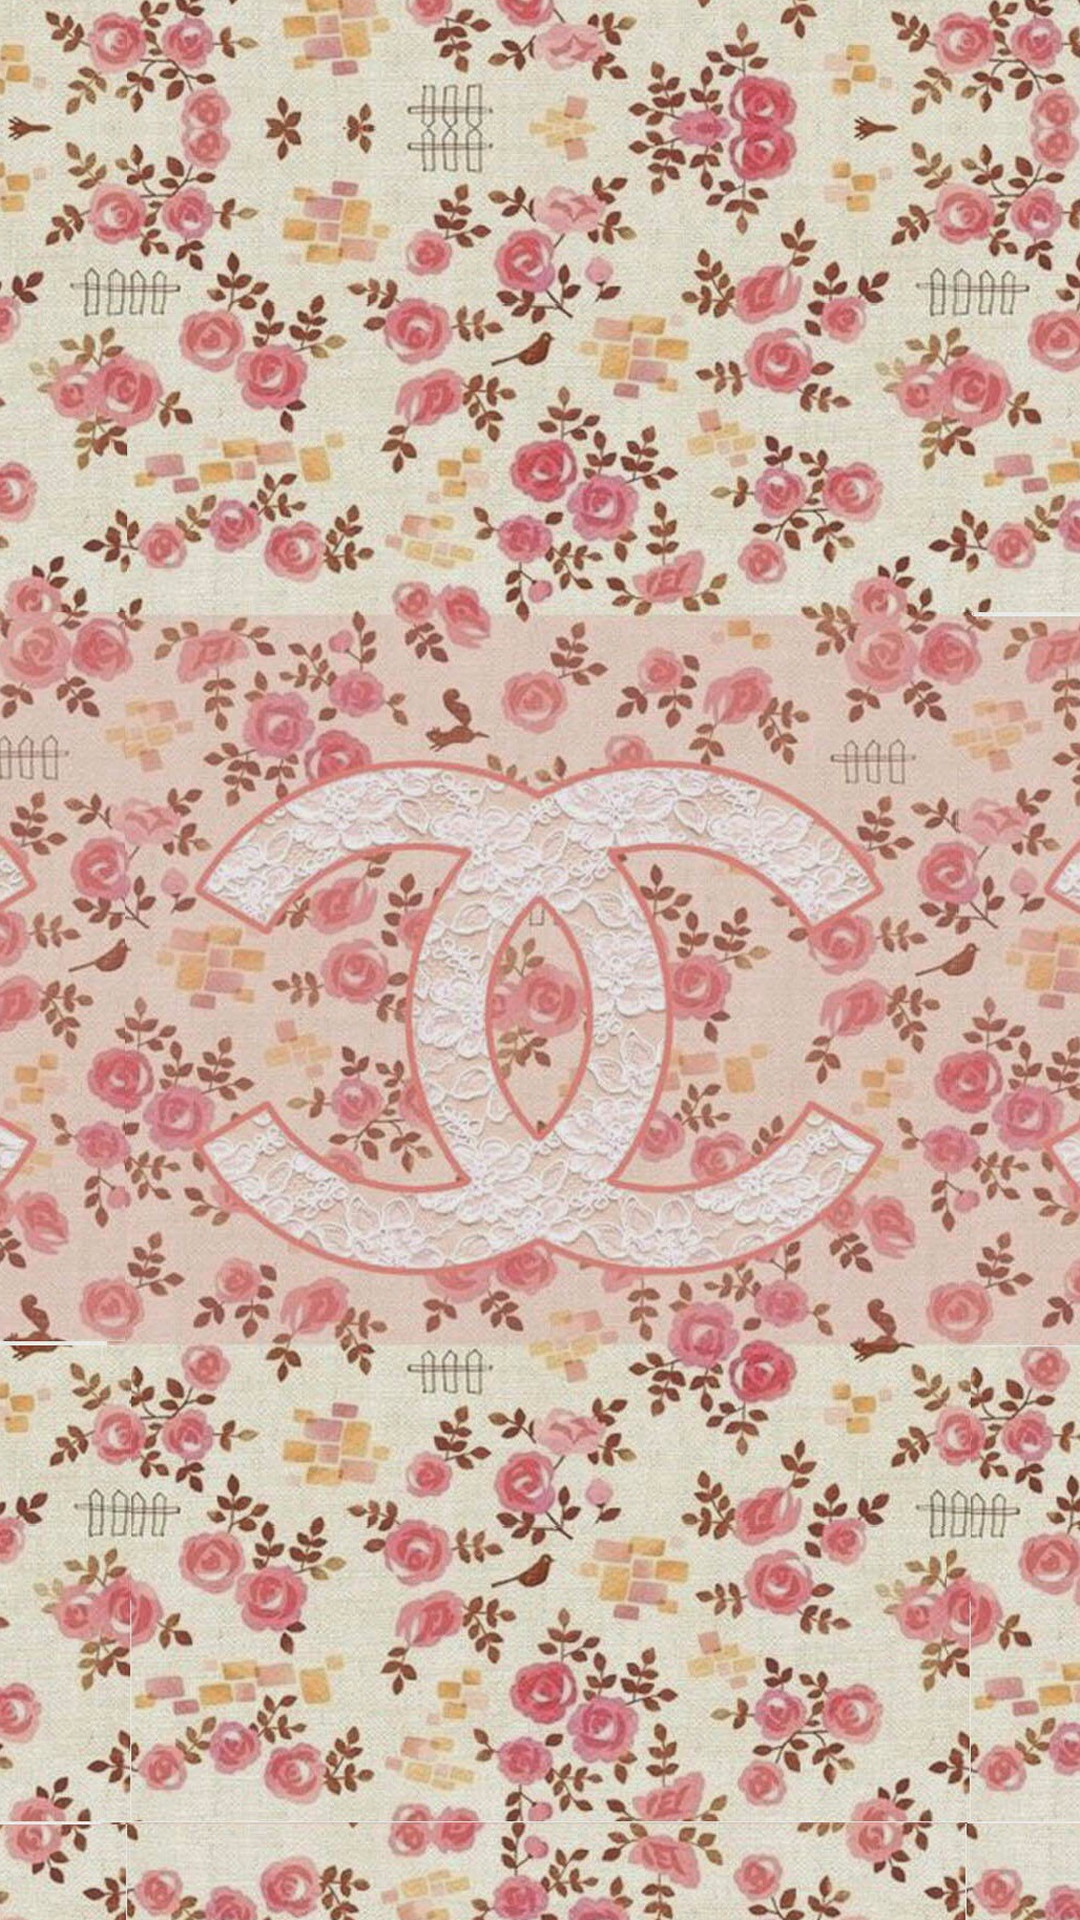 1080x1920 Coco Chanel Flowers Pattern Logo iPhone 6 Wallpaper Download | iPhone .